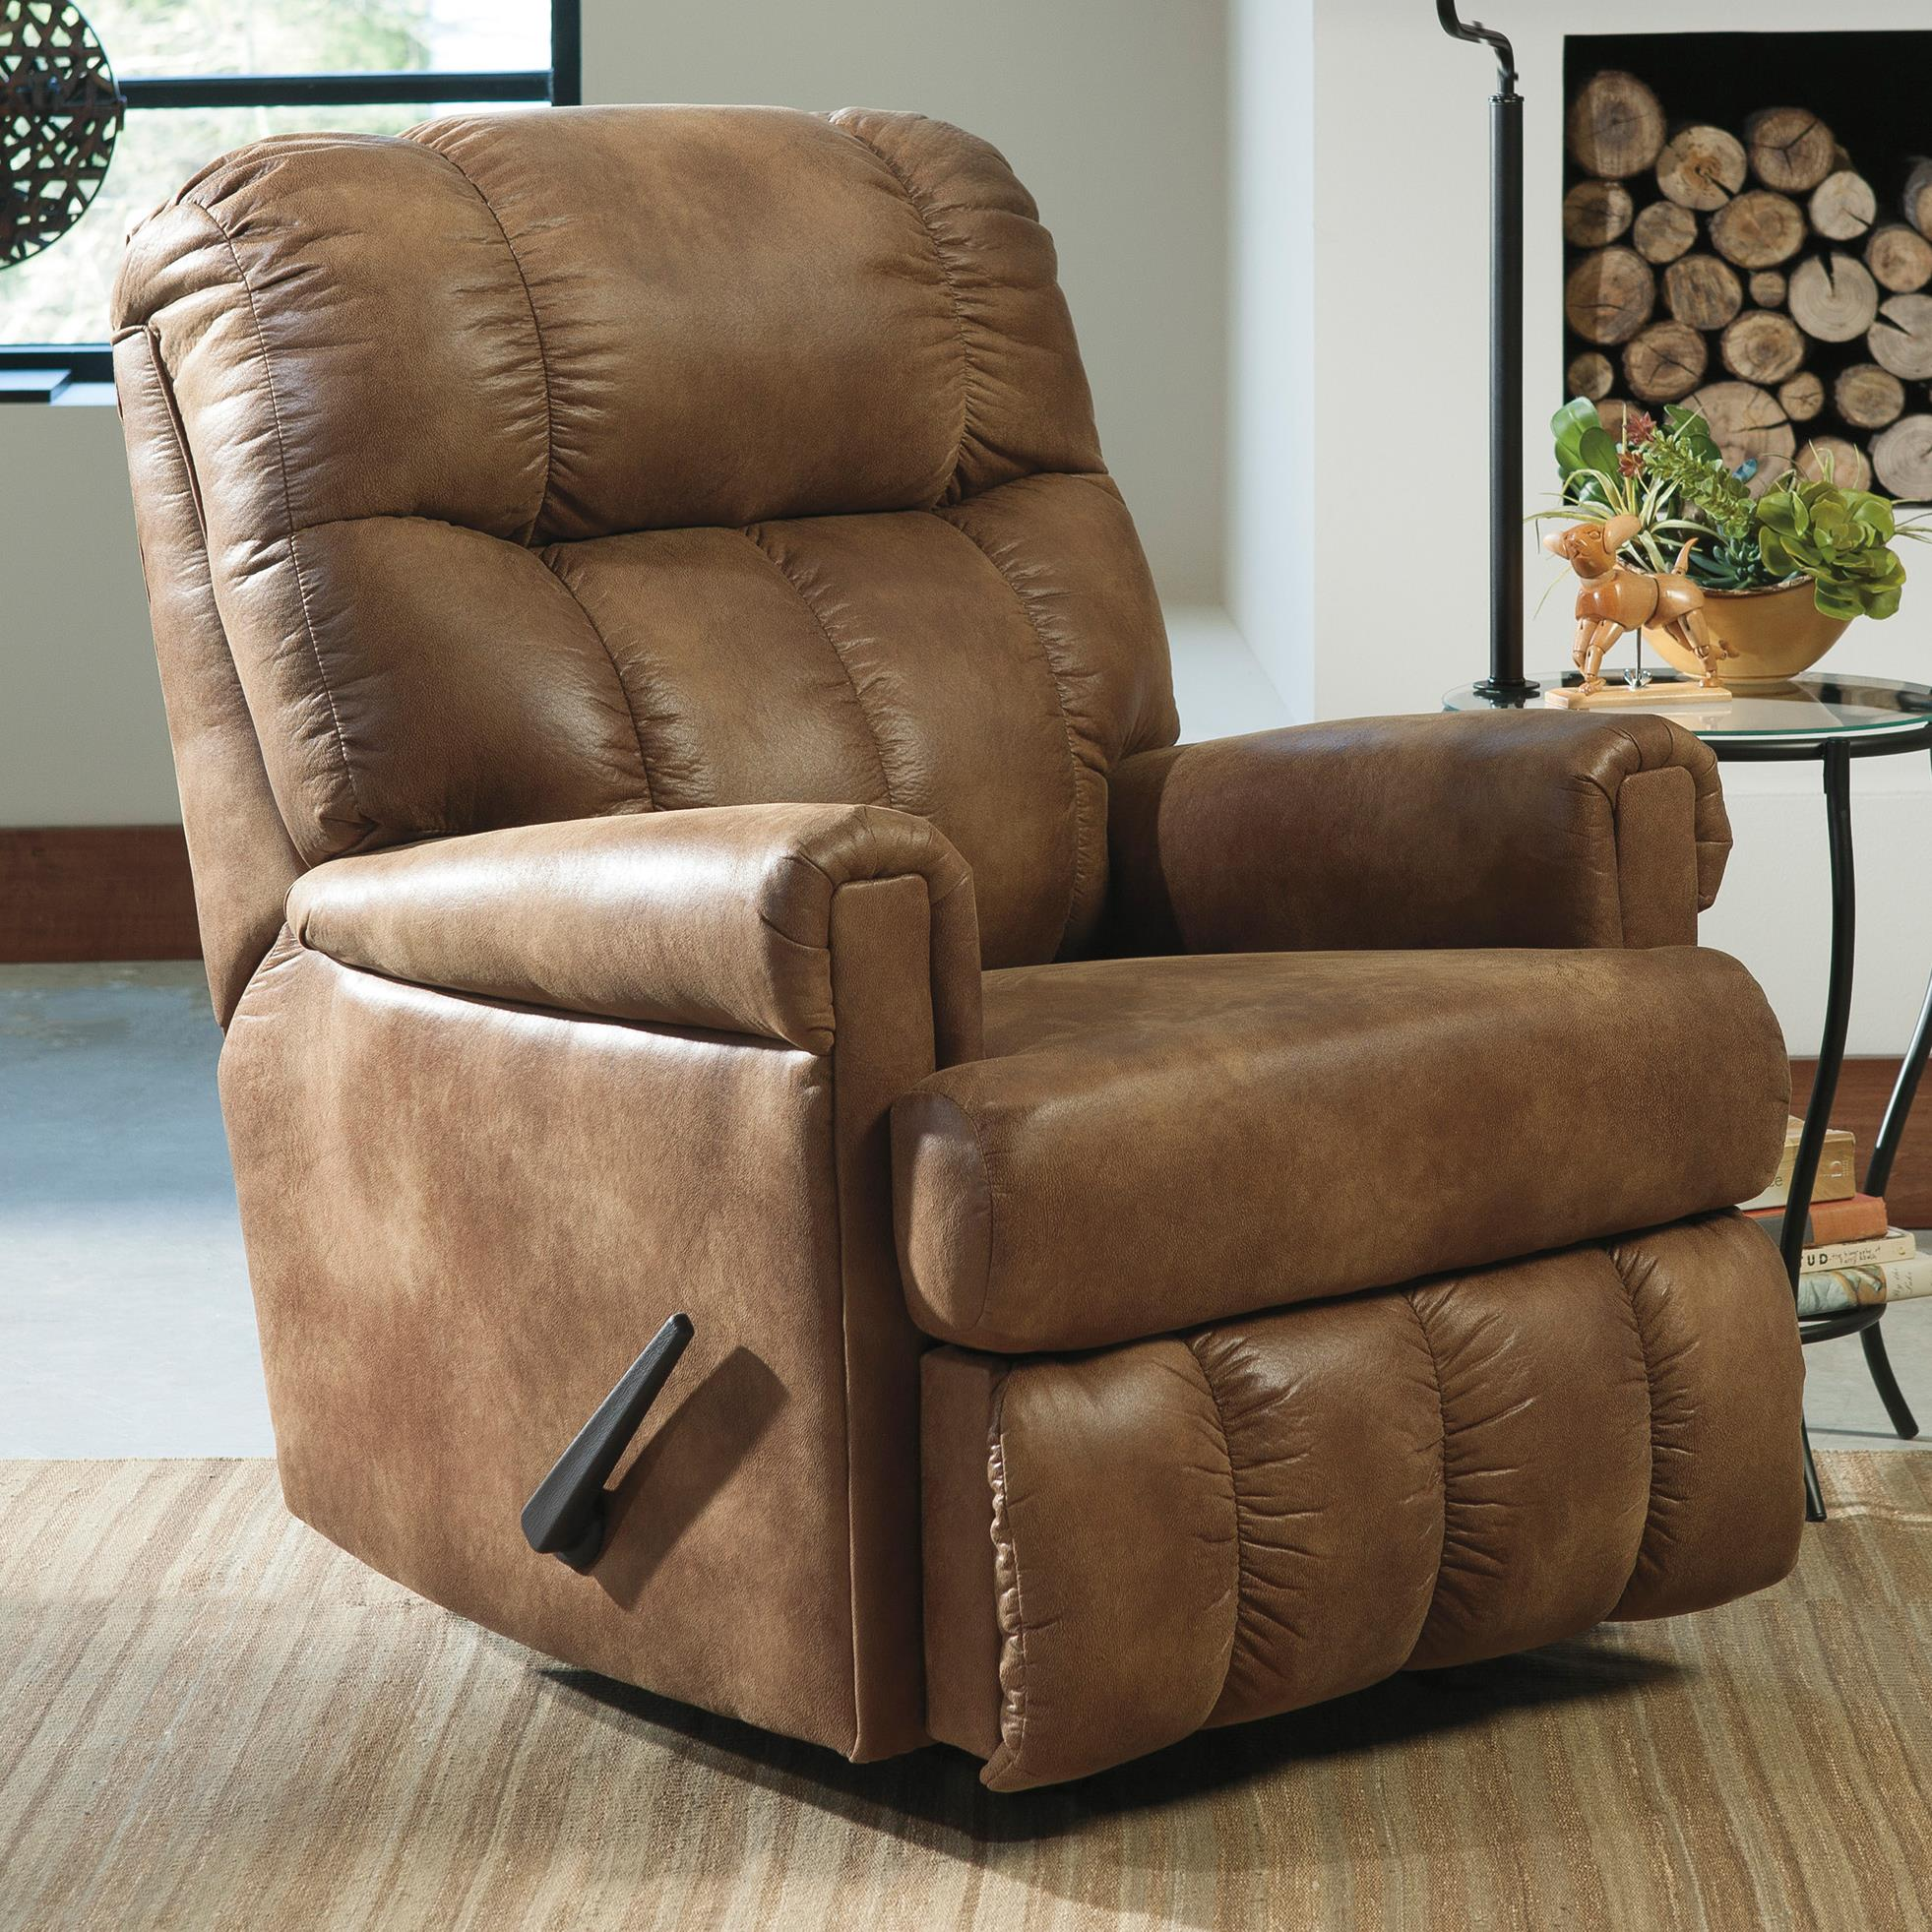 Signature Design by Ashley Chipster Rocker Recliner - Item Number: 4750025